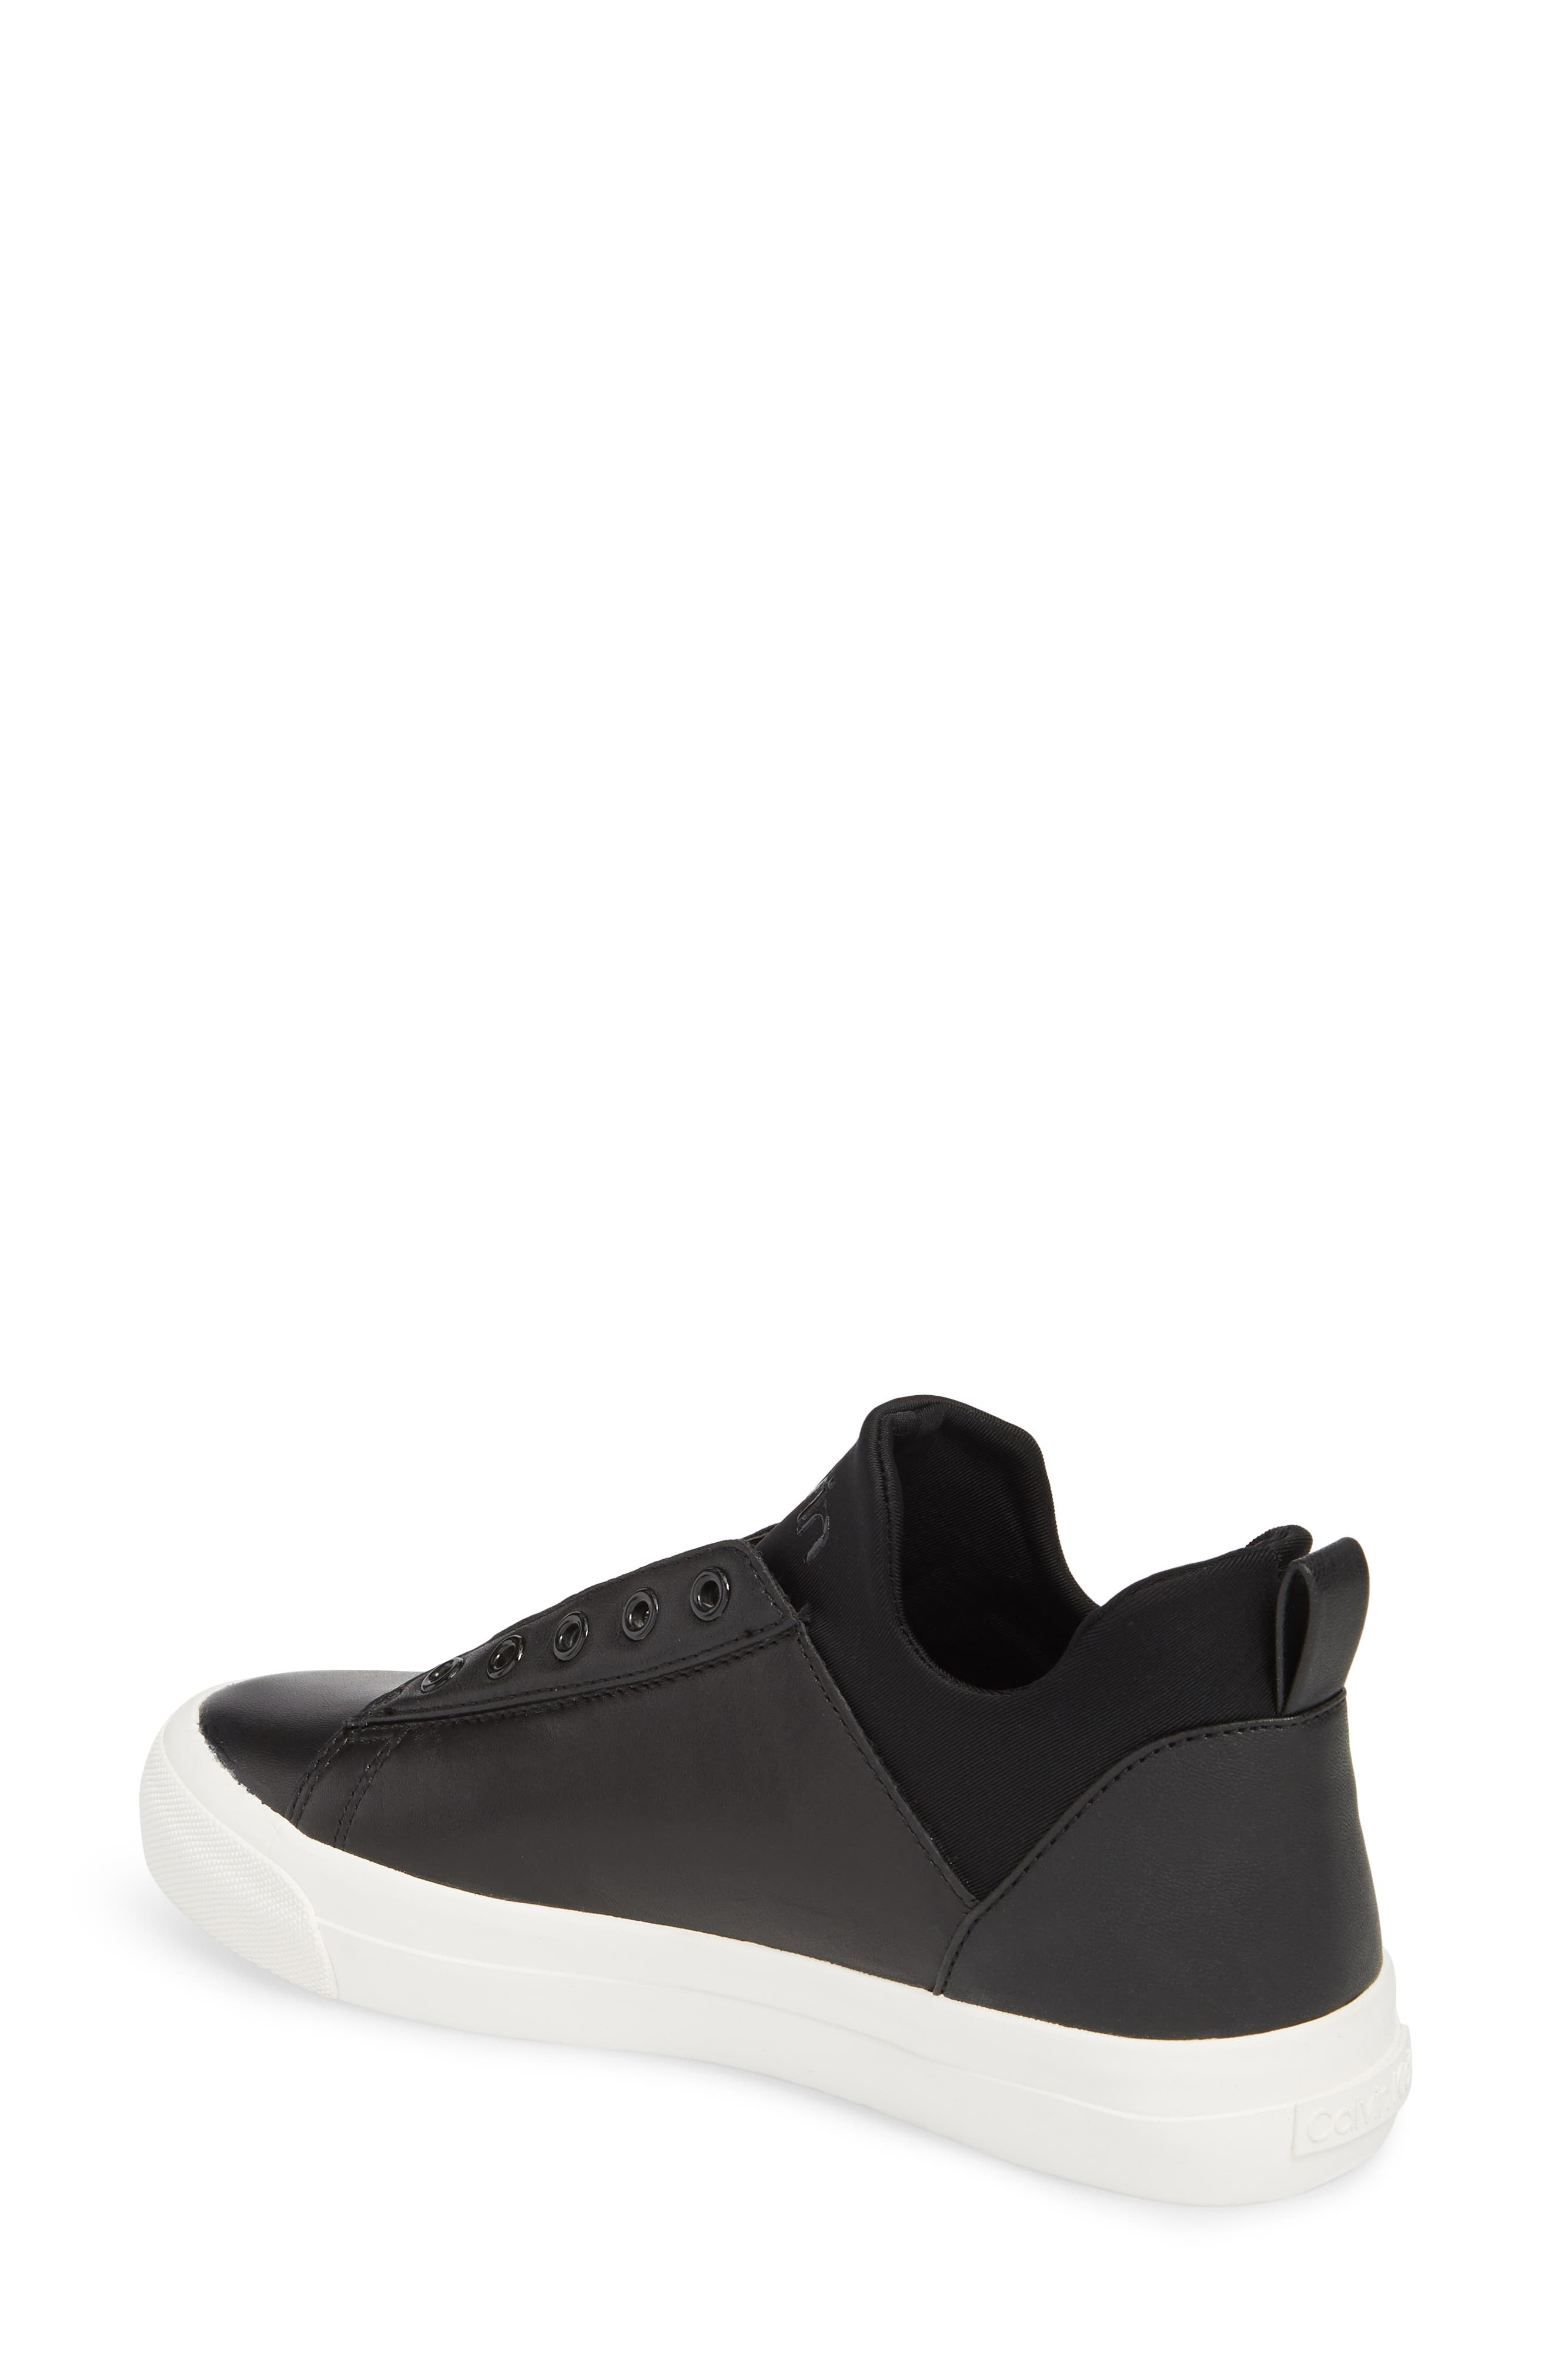 Valorie Mid Top Sneaker,                             Alternate thumbnail 2, color,                             Black Leather